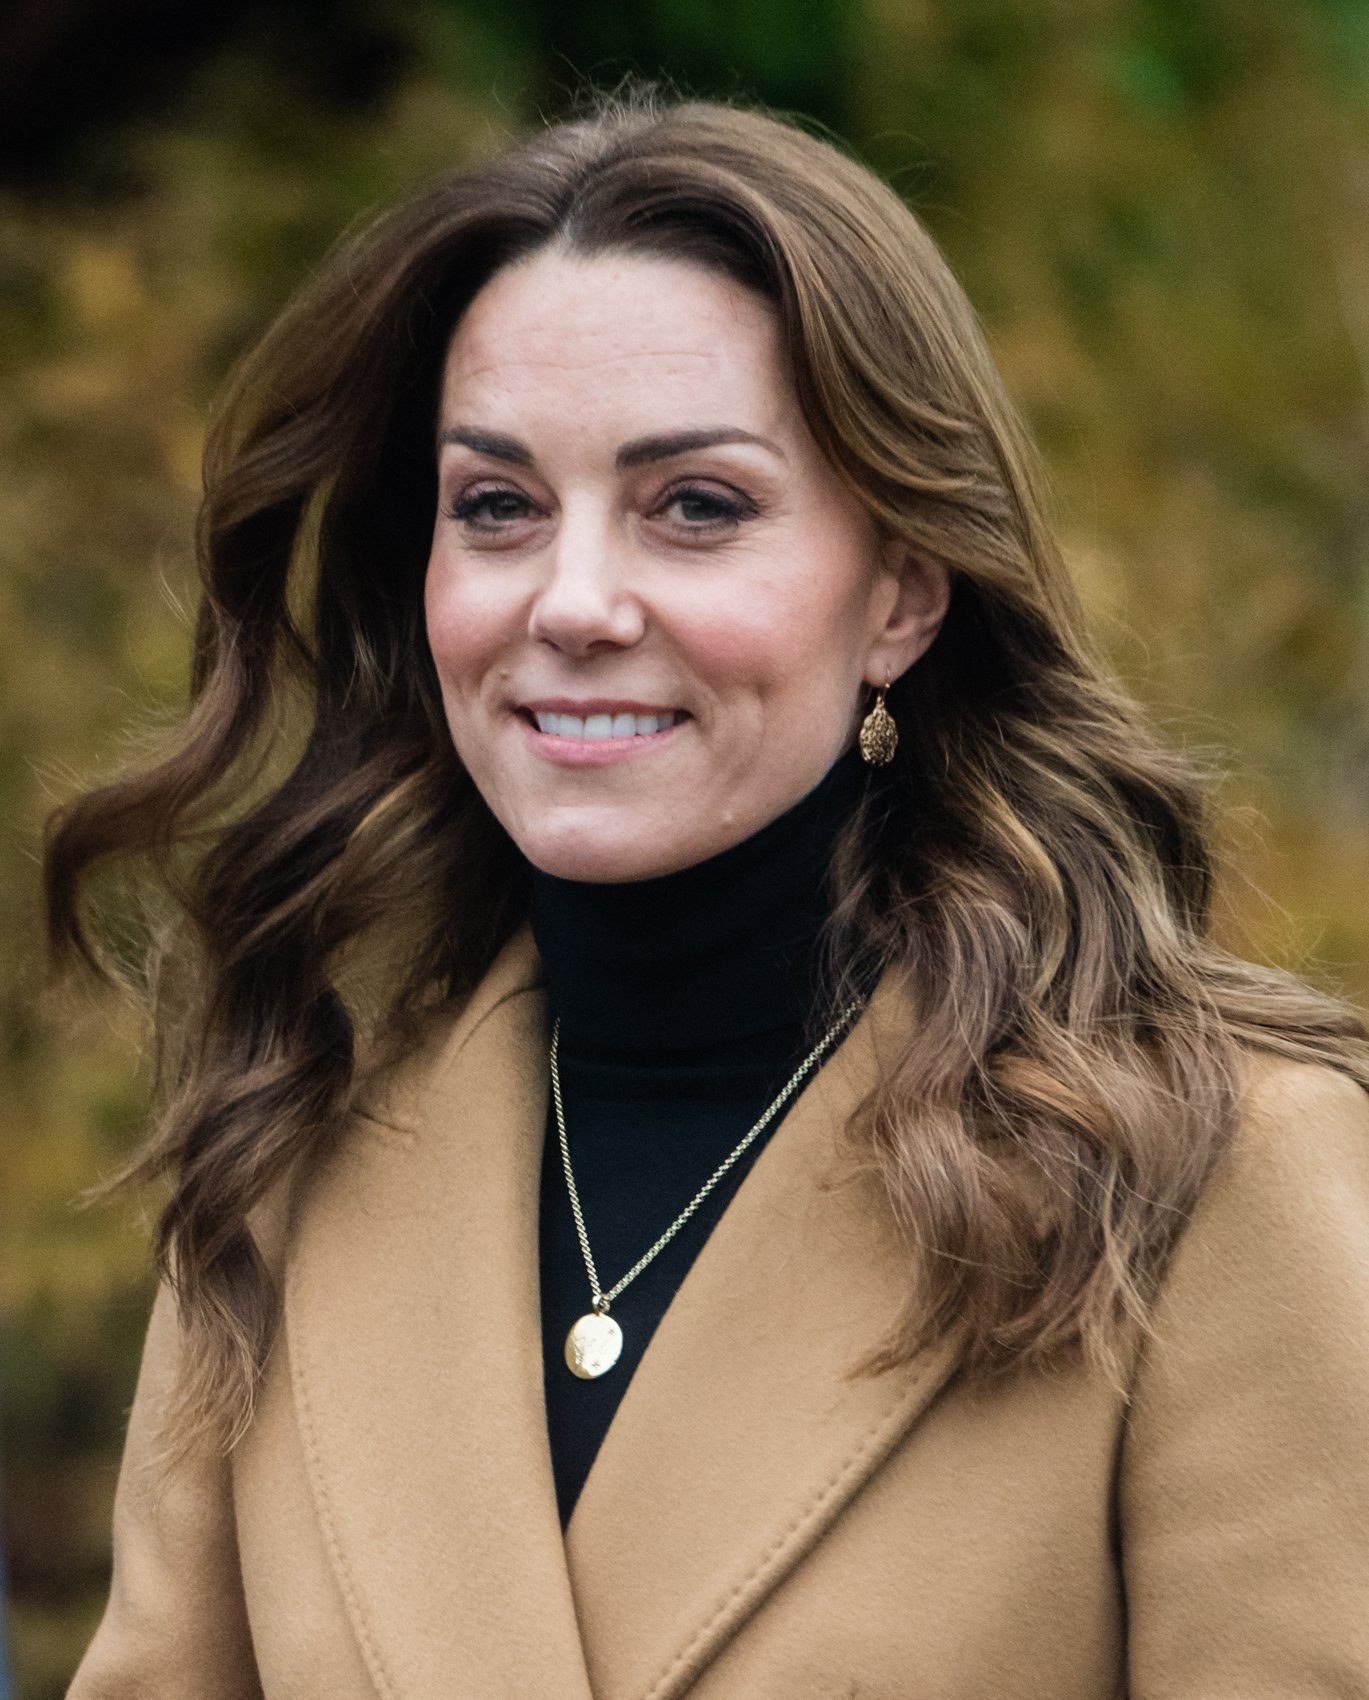 As part of her 24 hour tour of the UK, Kate Middleton visited the HMP, on January 22, 2020 in Woking, England | Source: Getty Images (Photo by Samir Hussein/WireImage)